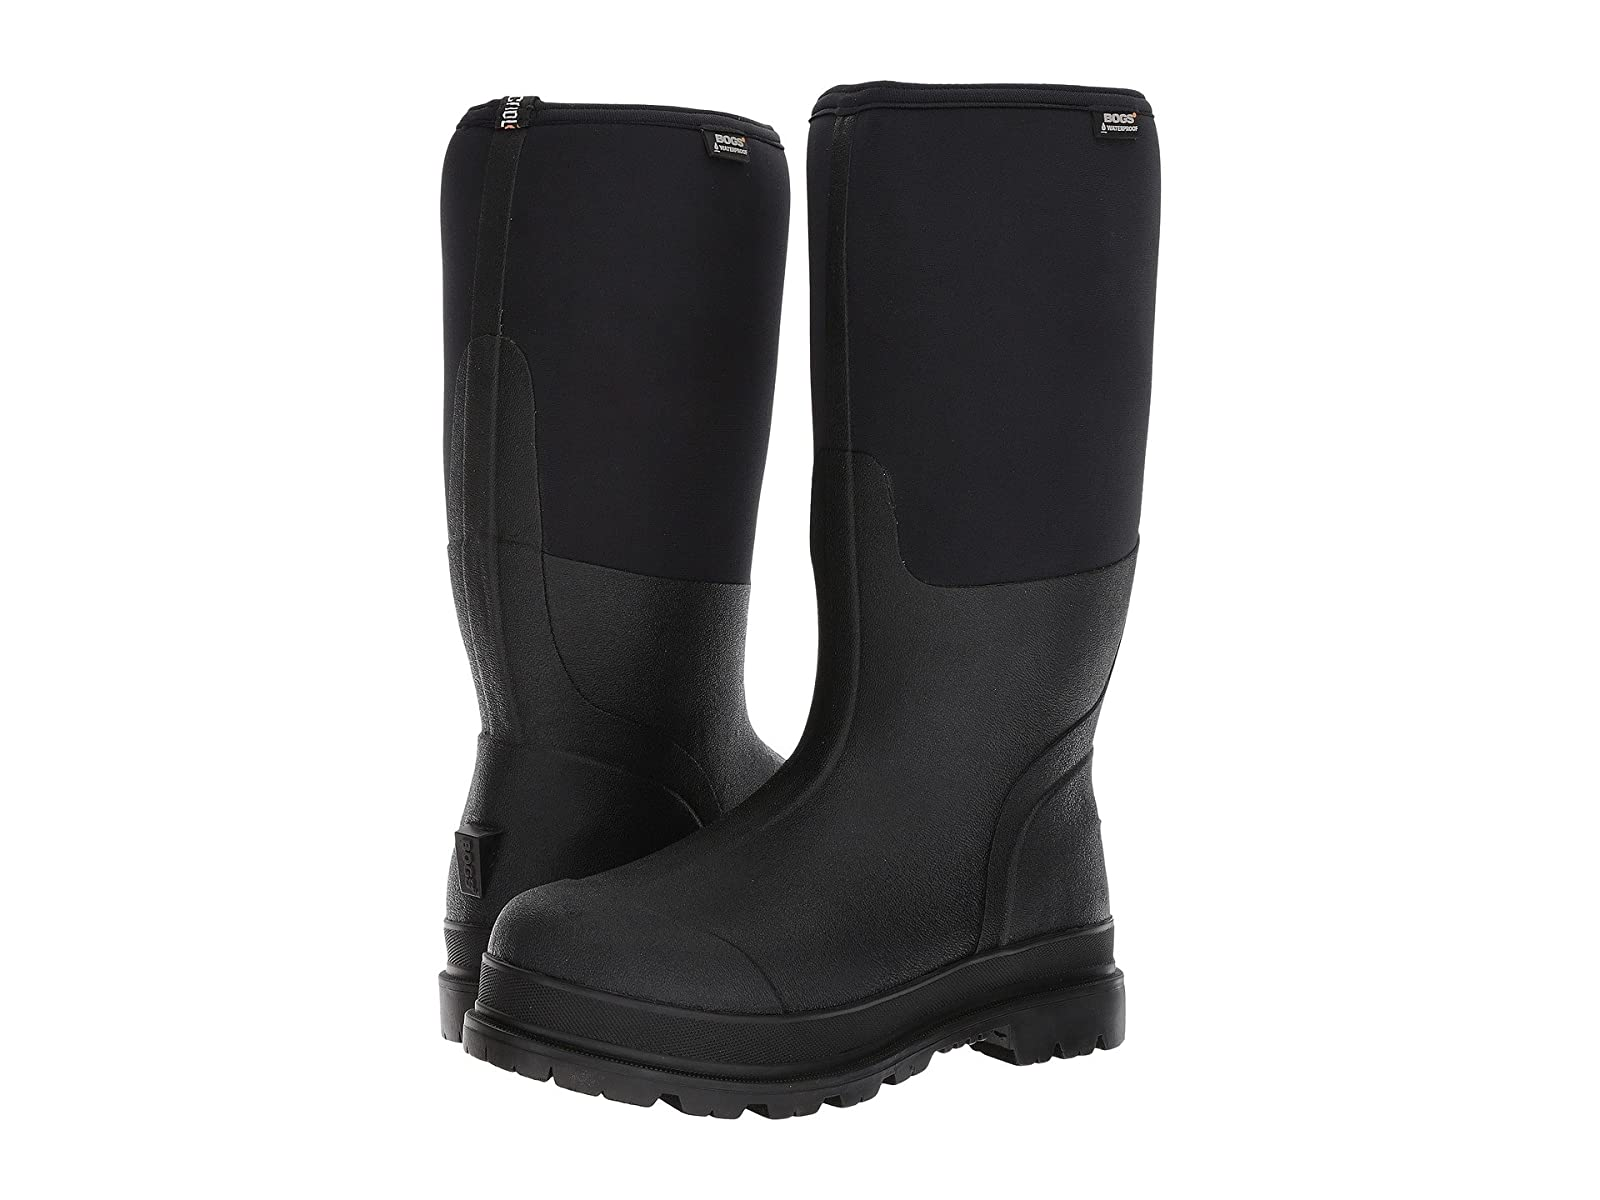 Bogs Rancher Cool Tech BootSelling fashionable and eye-catching shoes